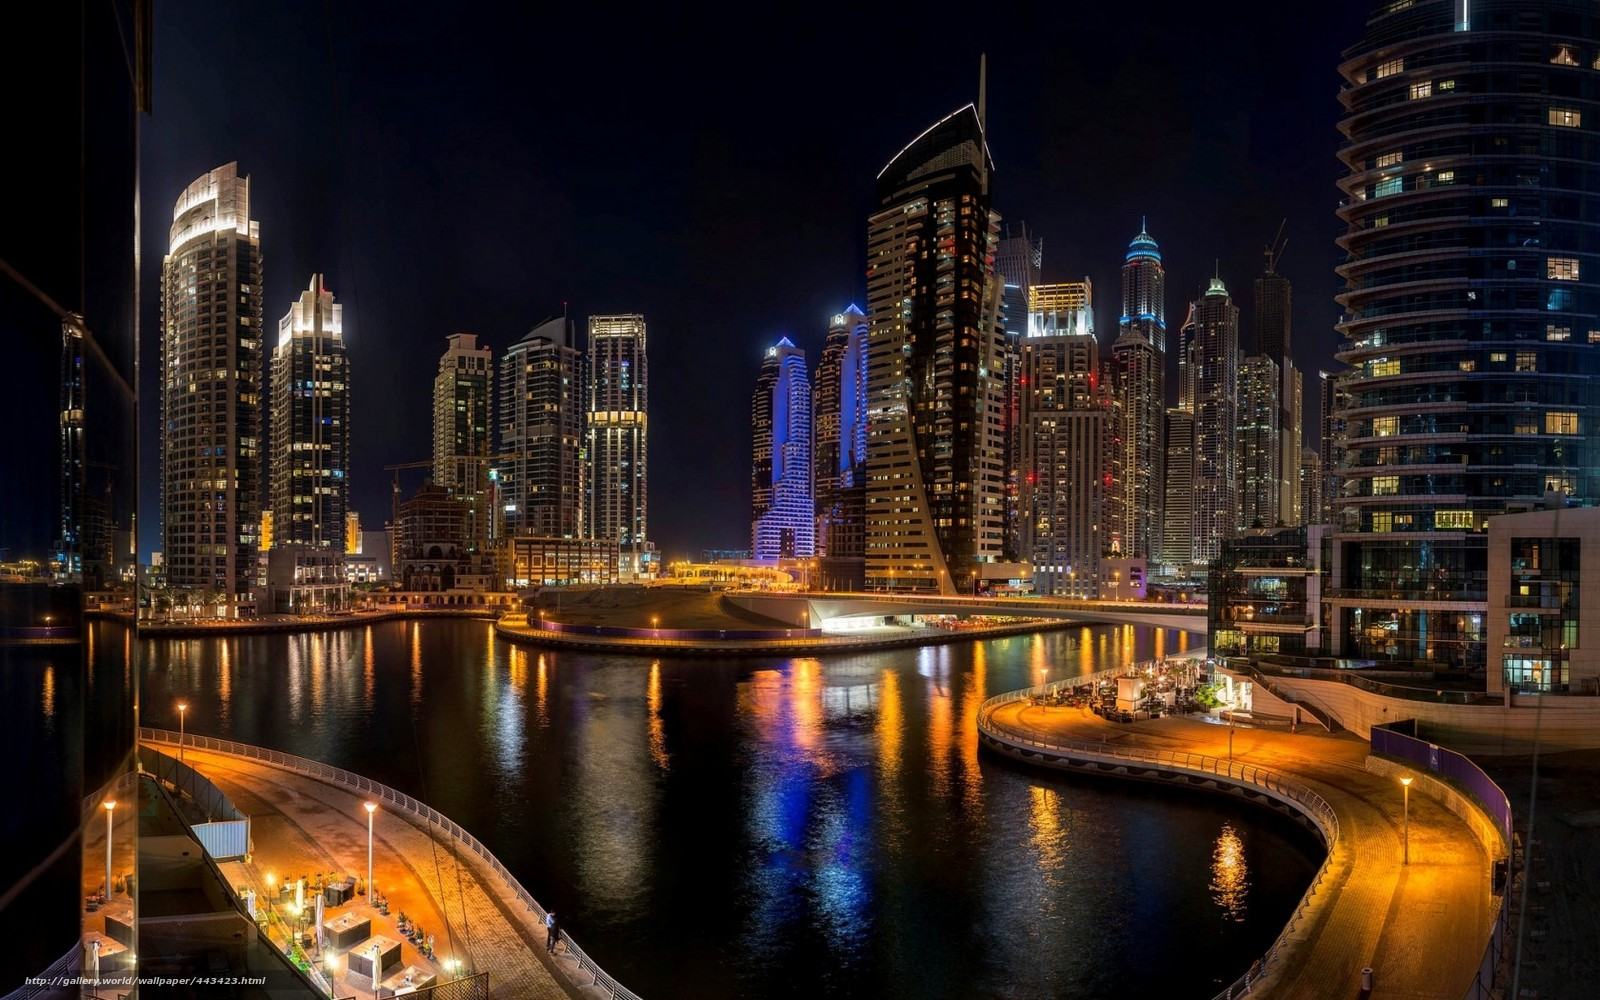 Dubai, dubai, UAE, city, night, building, Skyscrapers, high-rise, sea, road, bridge